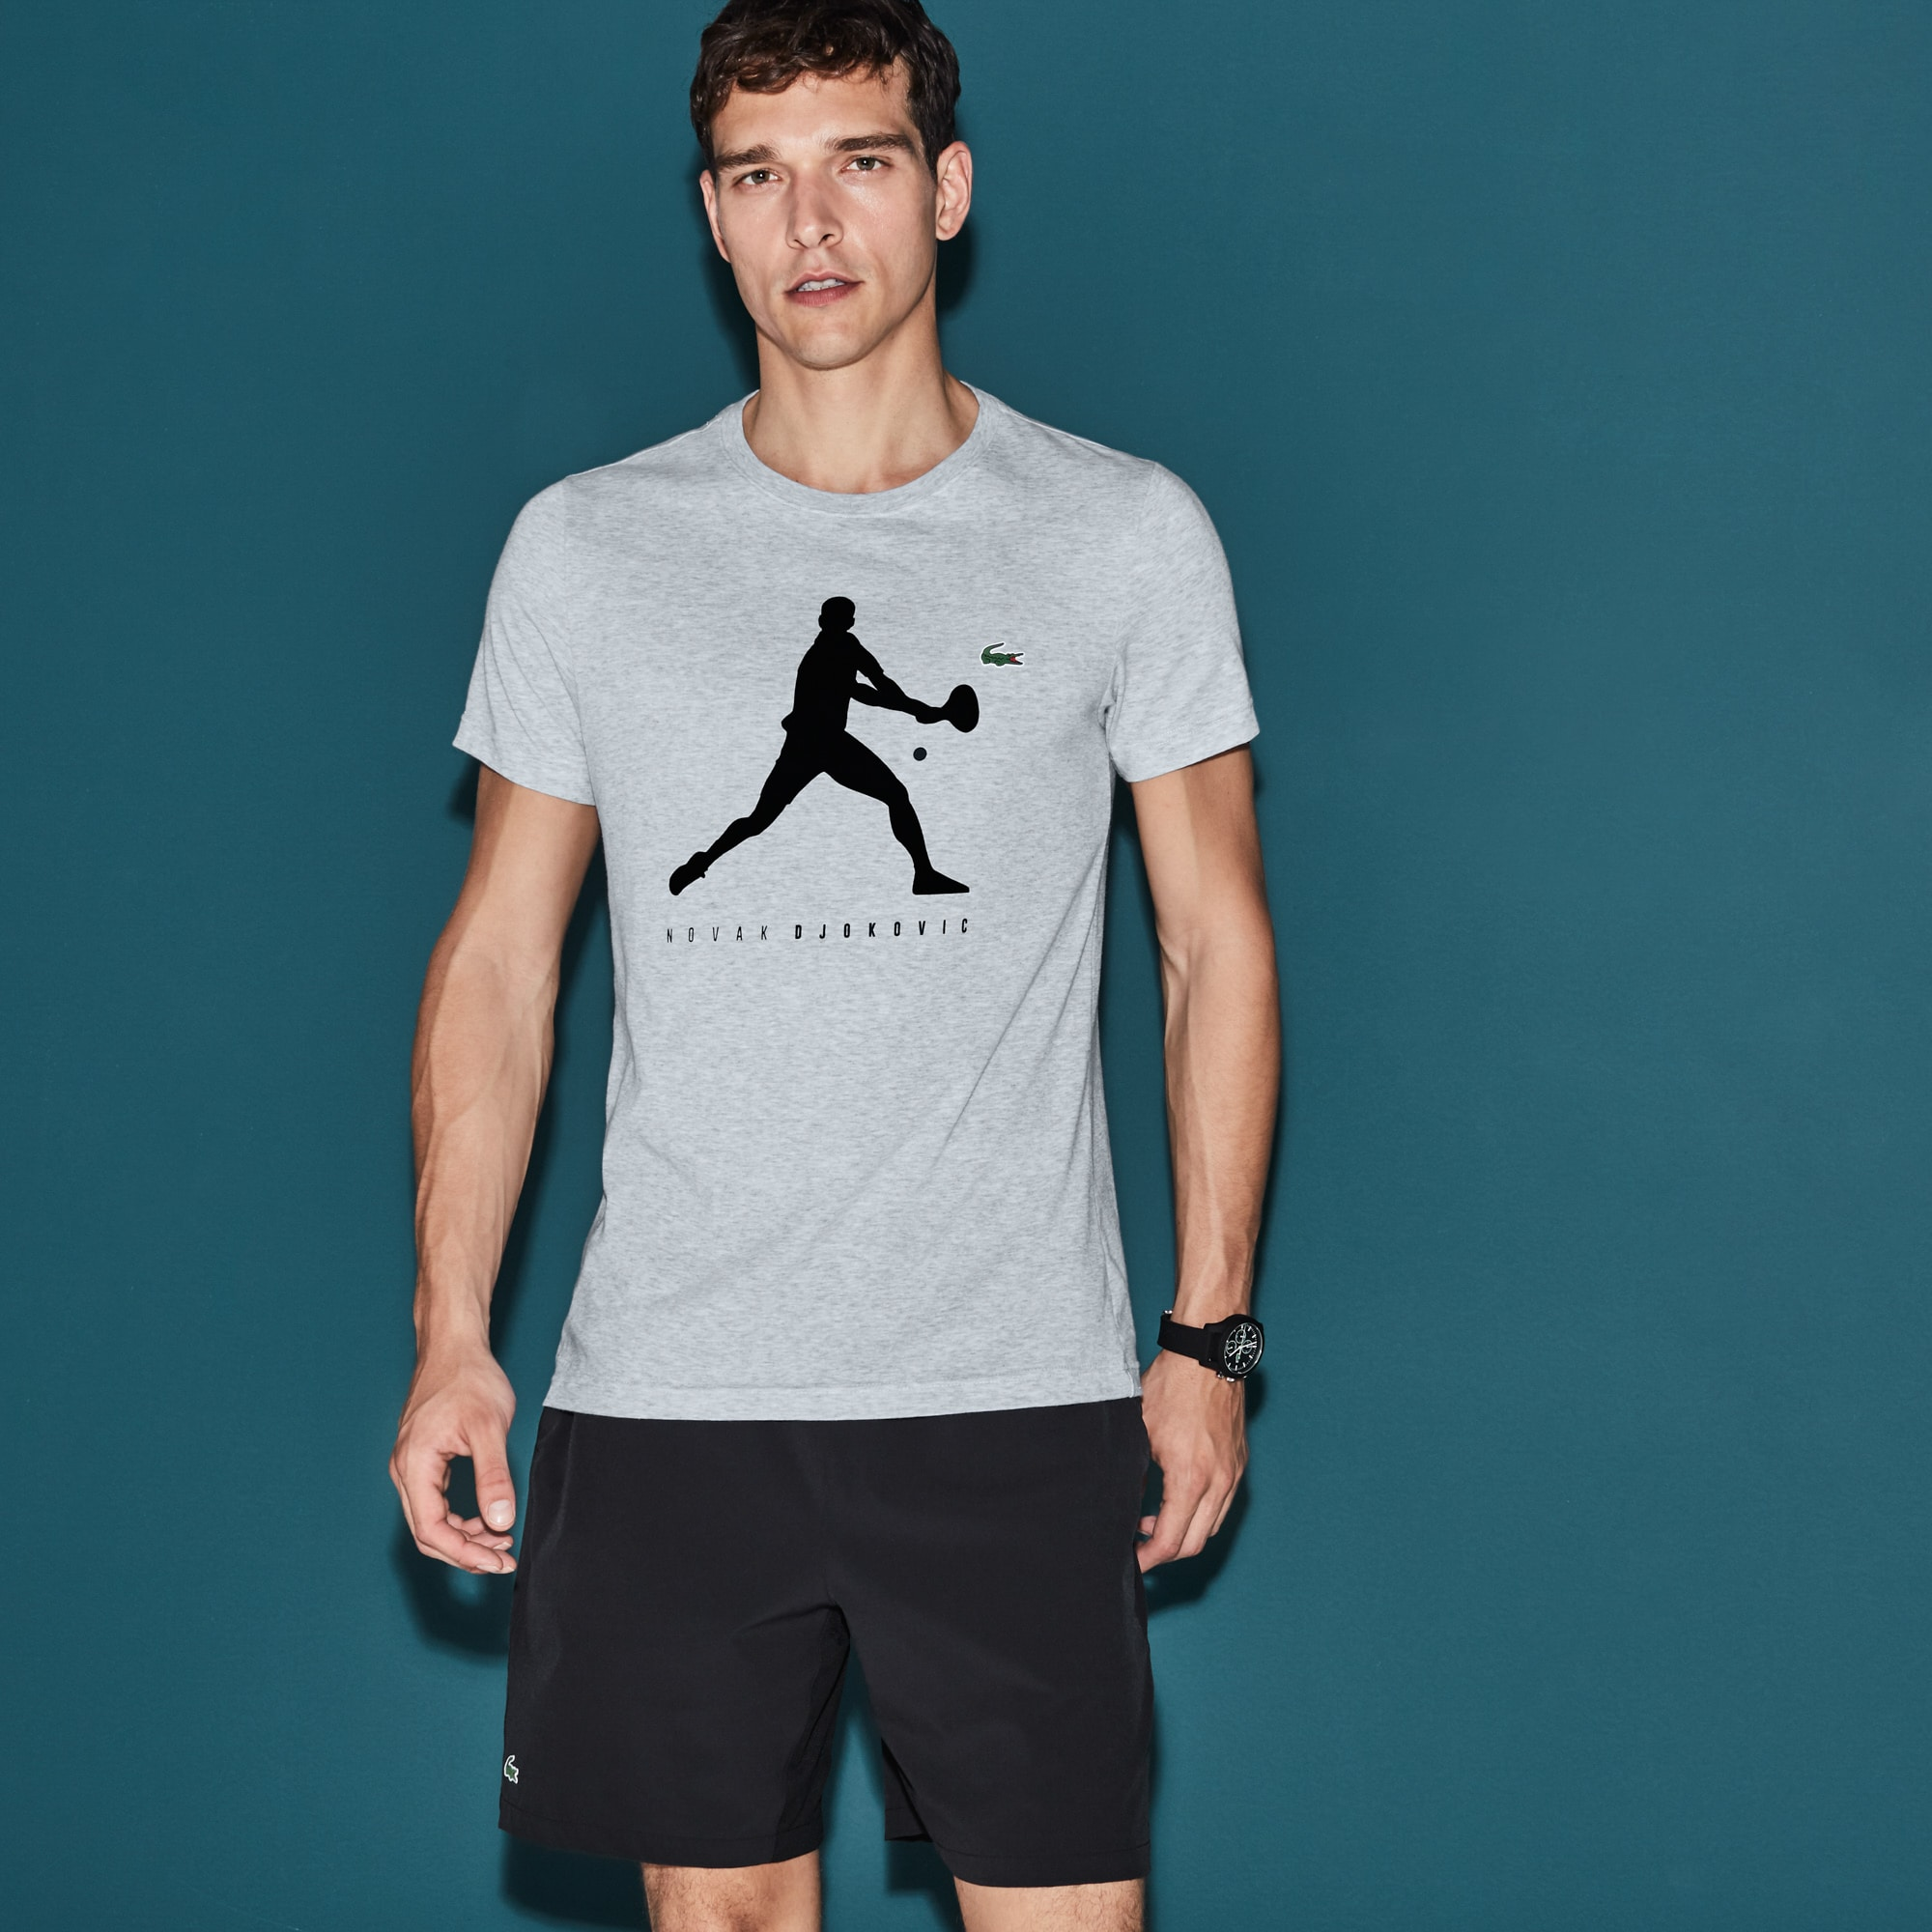 Men's Crew Neck Jersey T-Shirt - Support With Style Collection for Novak Djokovic